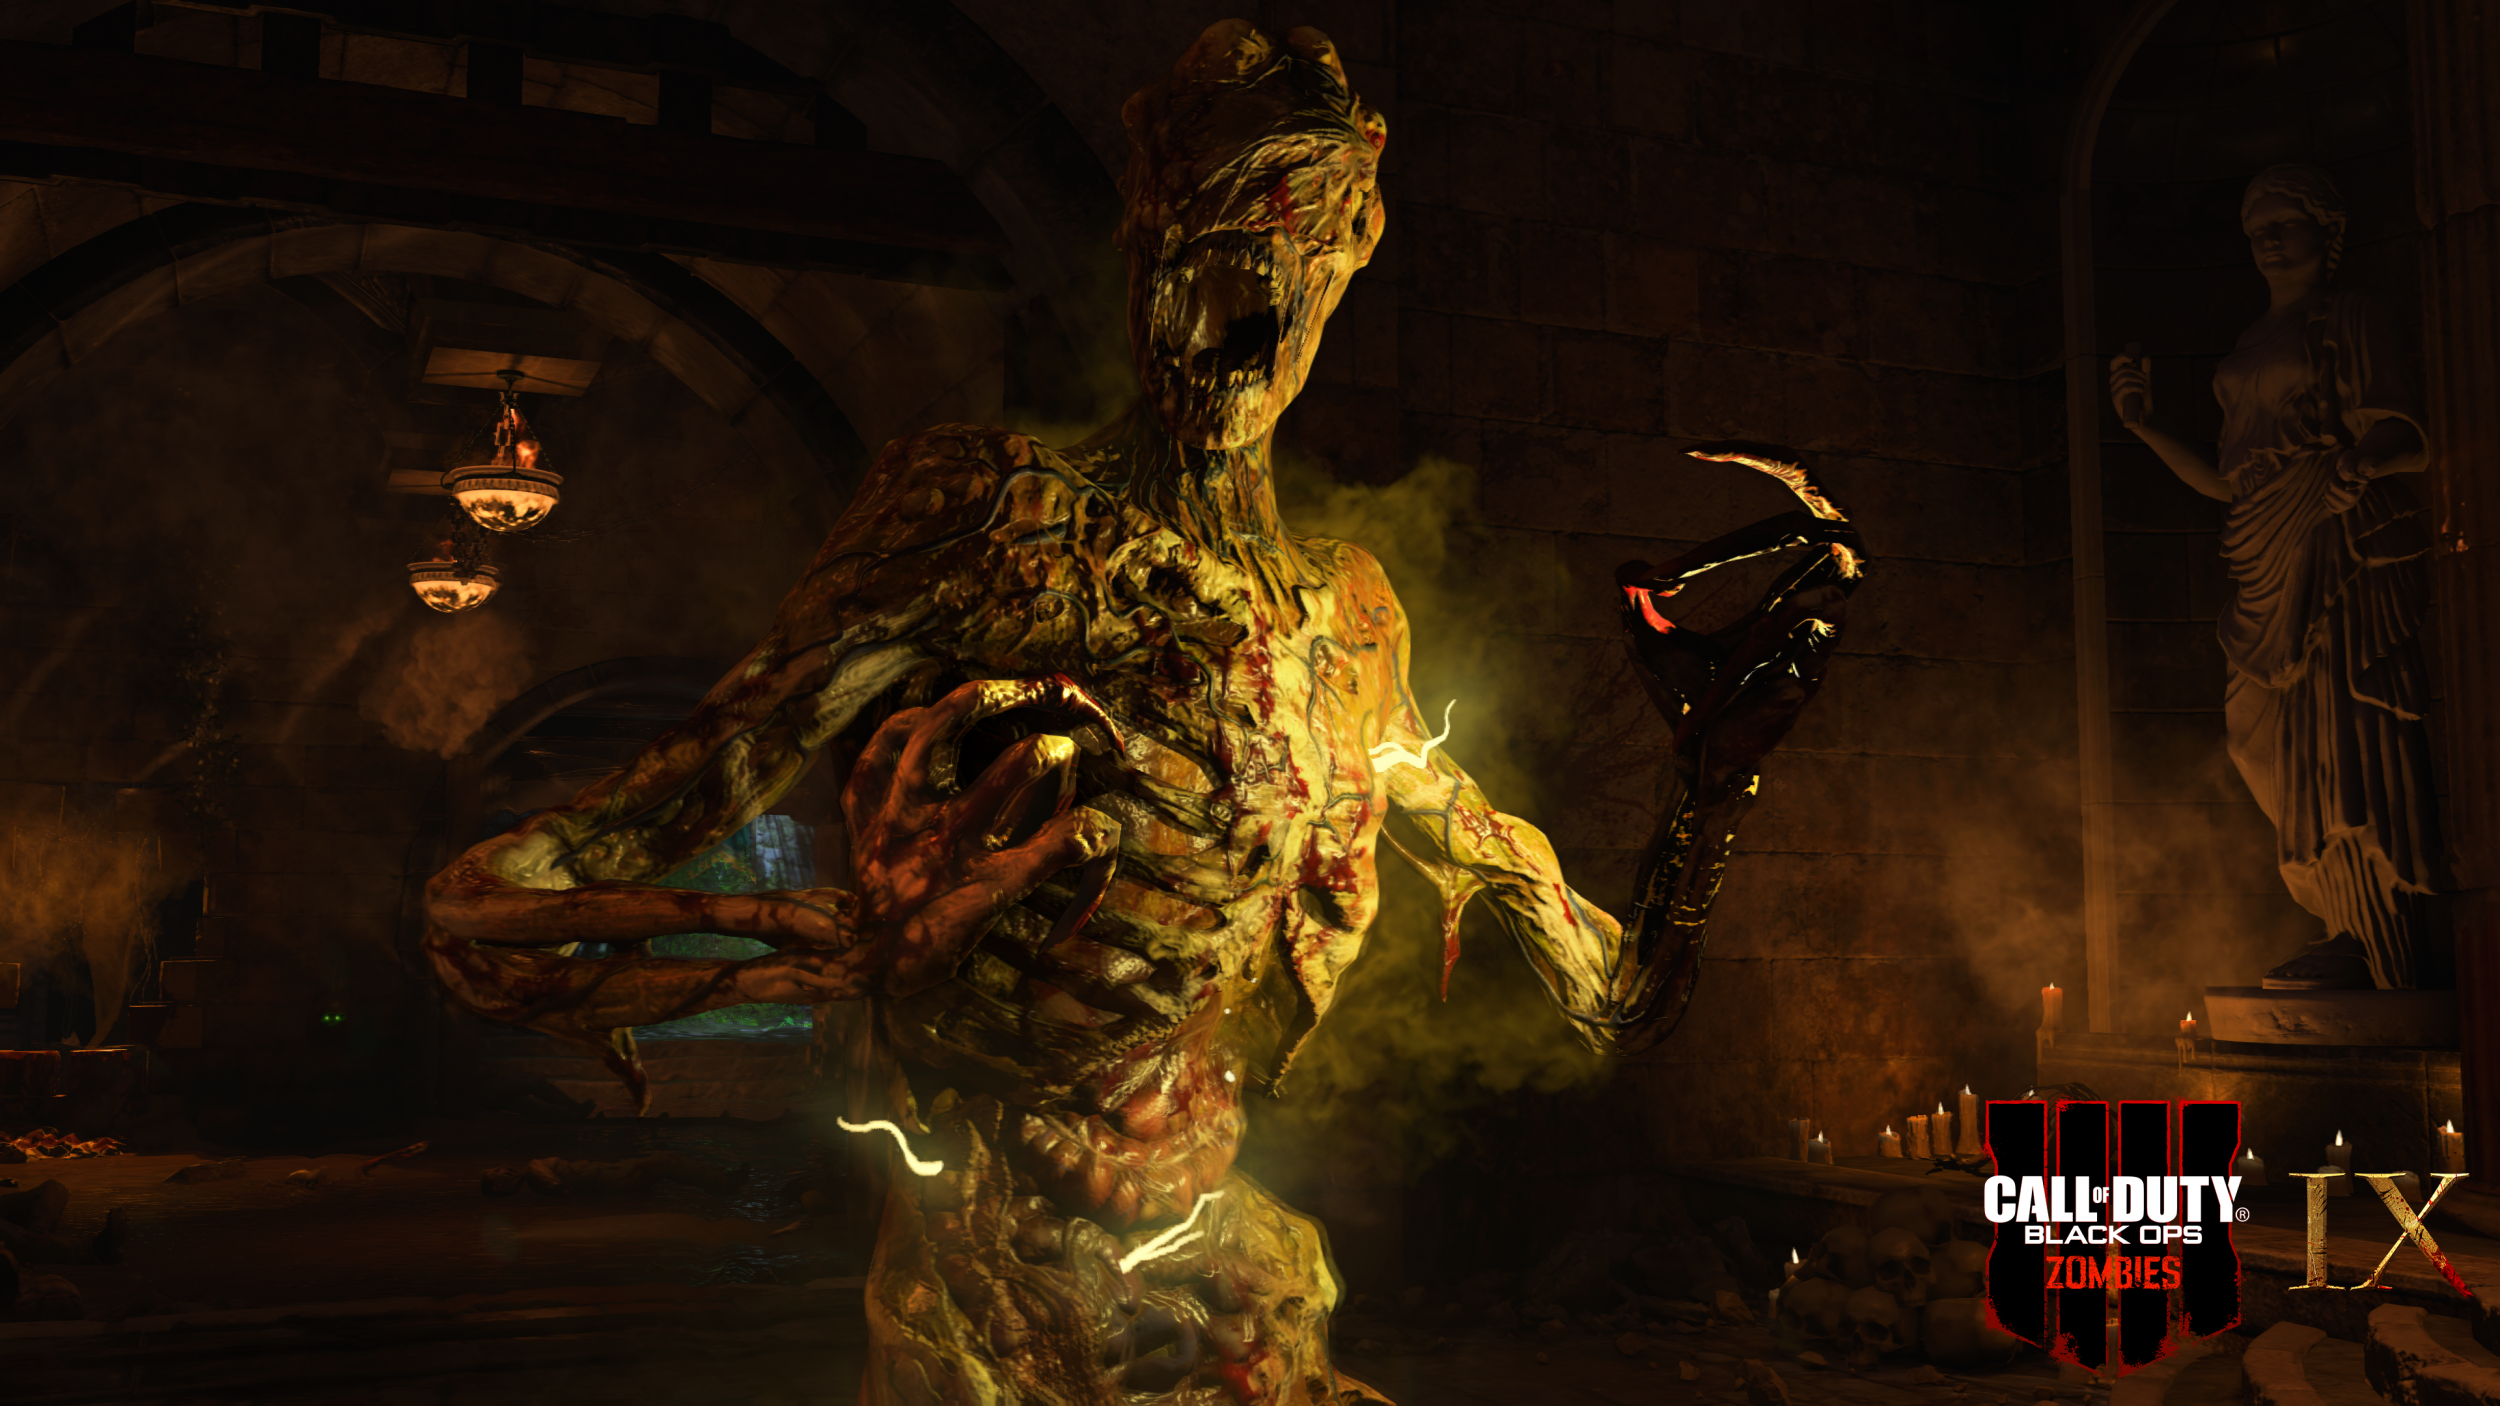 Call of Duty' Zombies Devs Discuss How 'Black Ops 4' Mutates Co-Op Zombie Custom Map Family Guy on custom nazi zombies, call duty black ops zombies all maps, battletech maps, black ops 2 zombies maps, custom zombies tmg, custom zombies airport, custom zombies rocket base 10, custom cod zombies, star wars miniatures maps,